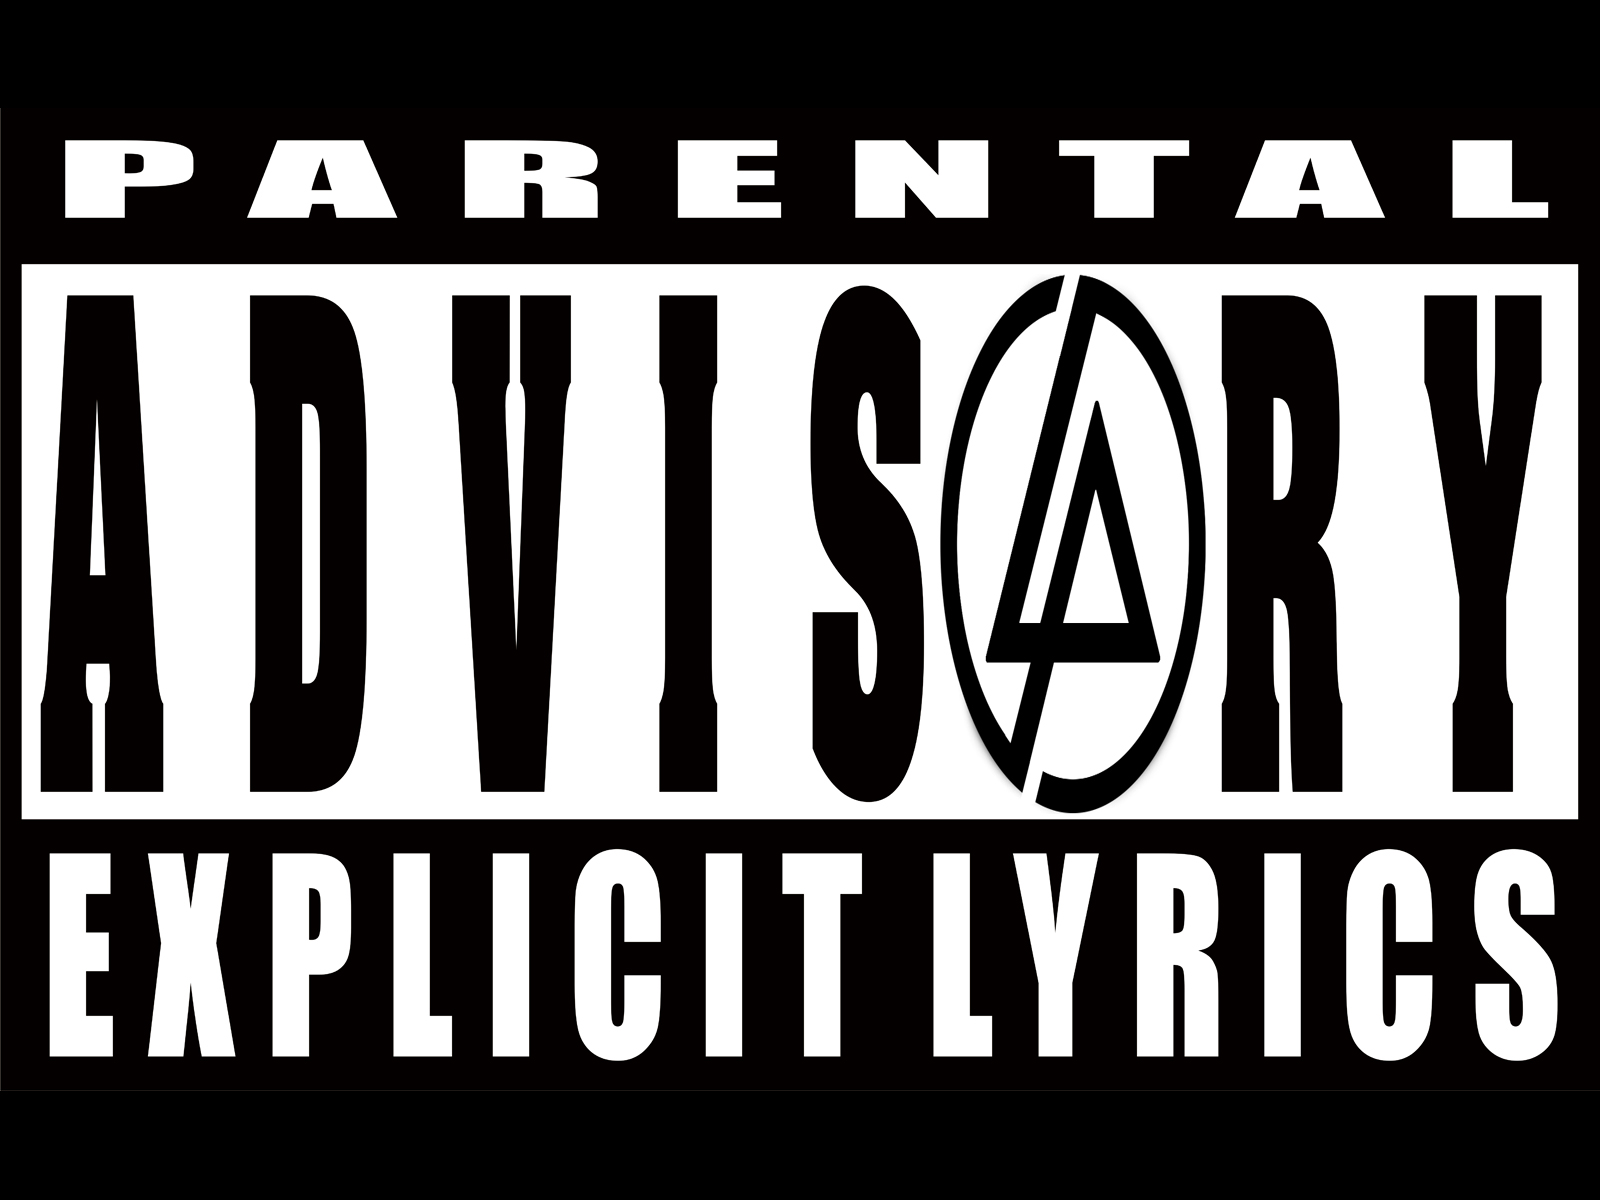 how to add parental advisory to a picture